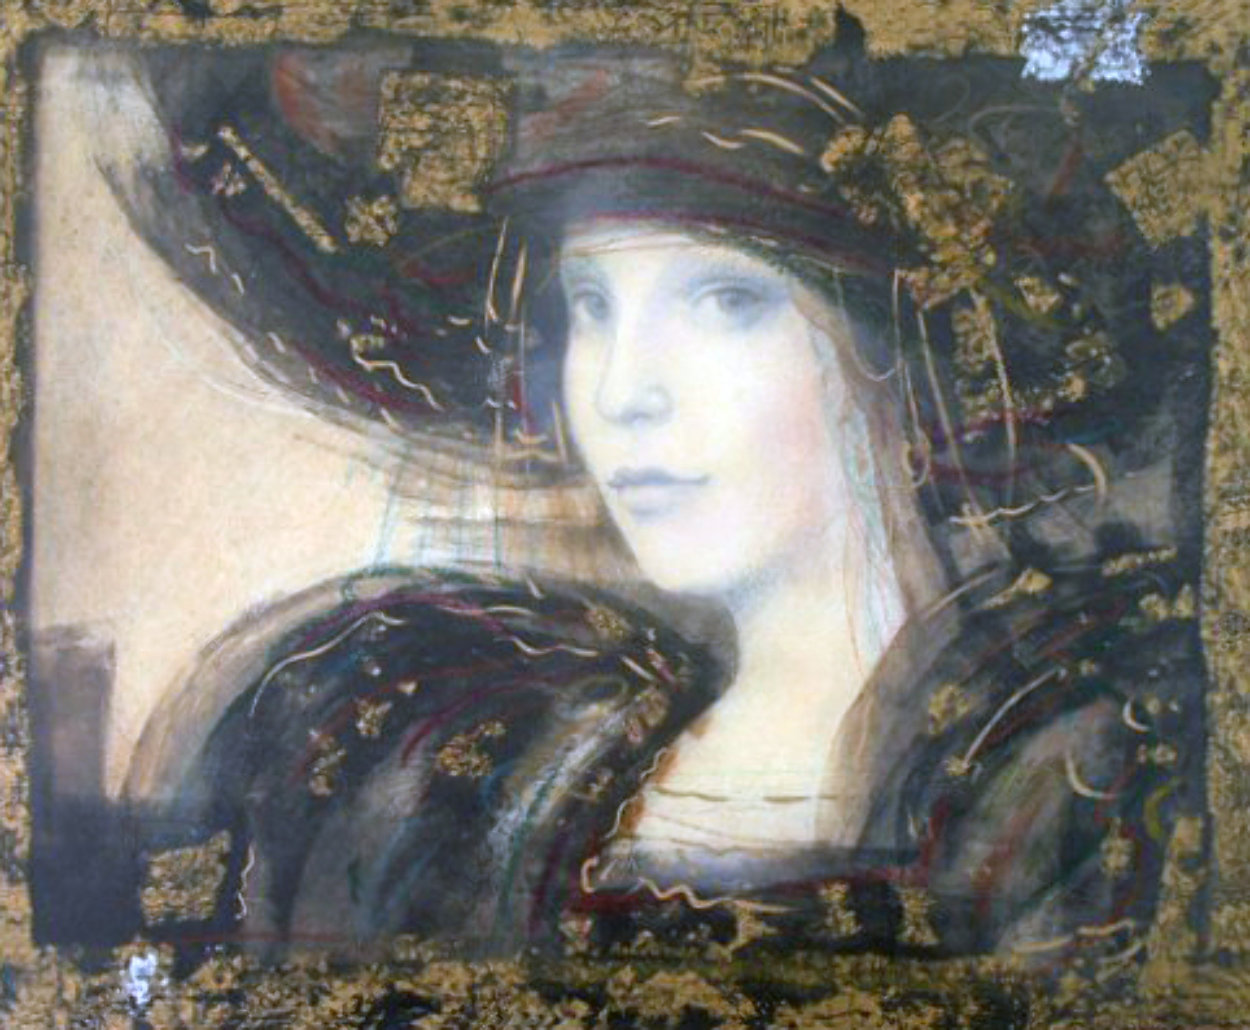 Fiorentina II PP 1997 Limited Edition Print by Csaba Markus